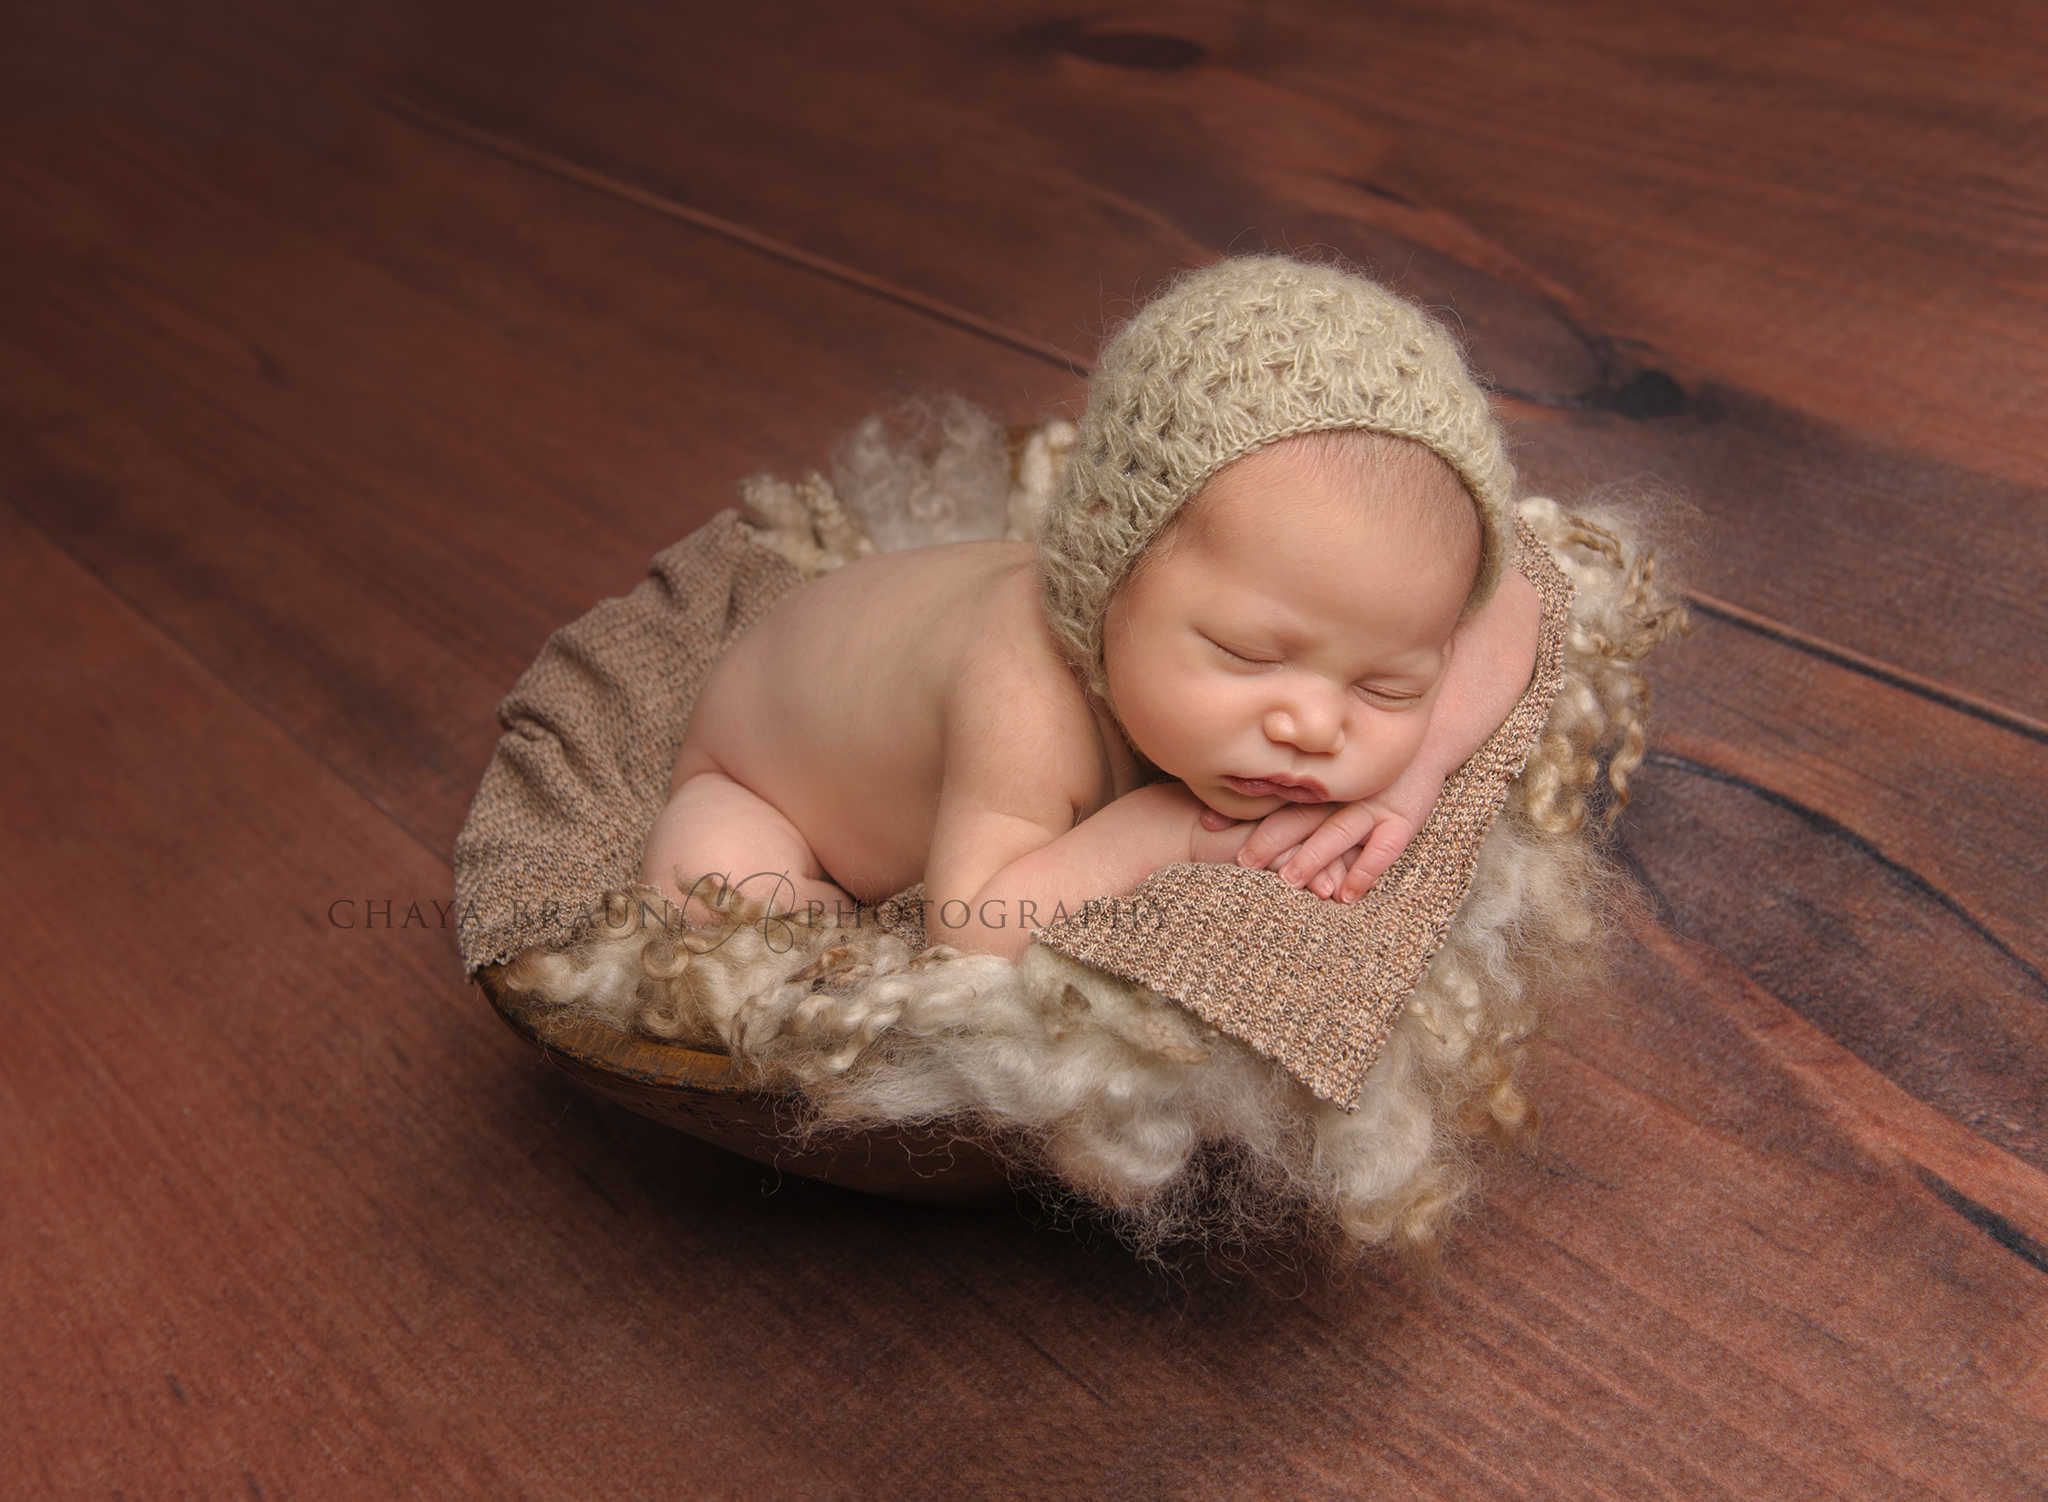 baby posed head on hands in basket